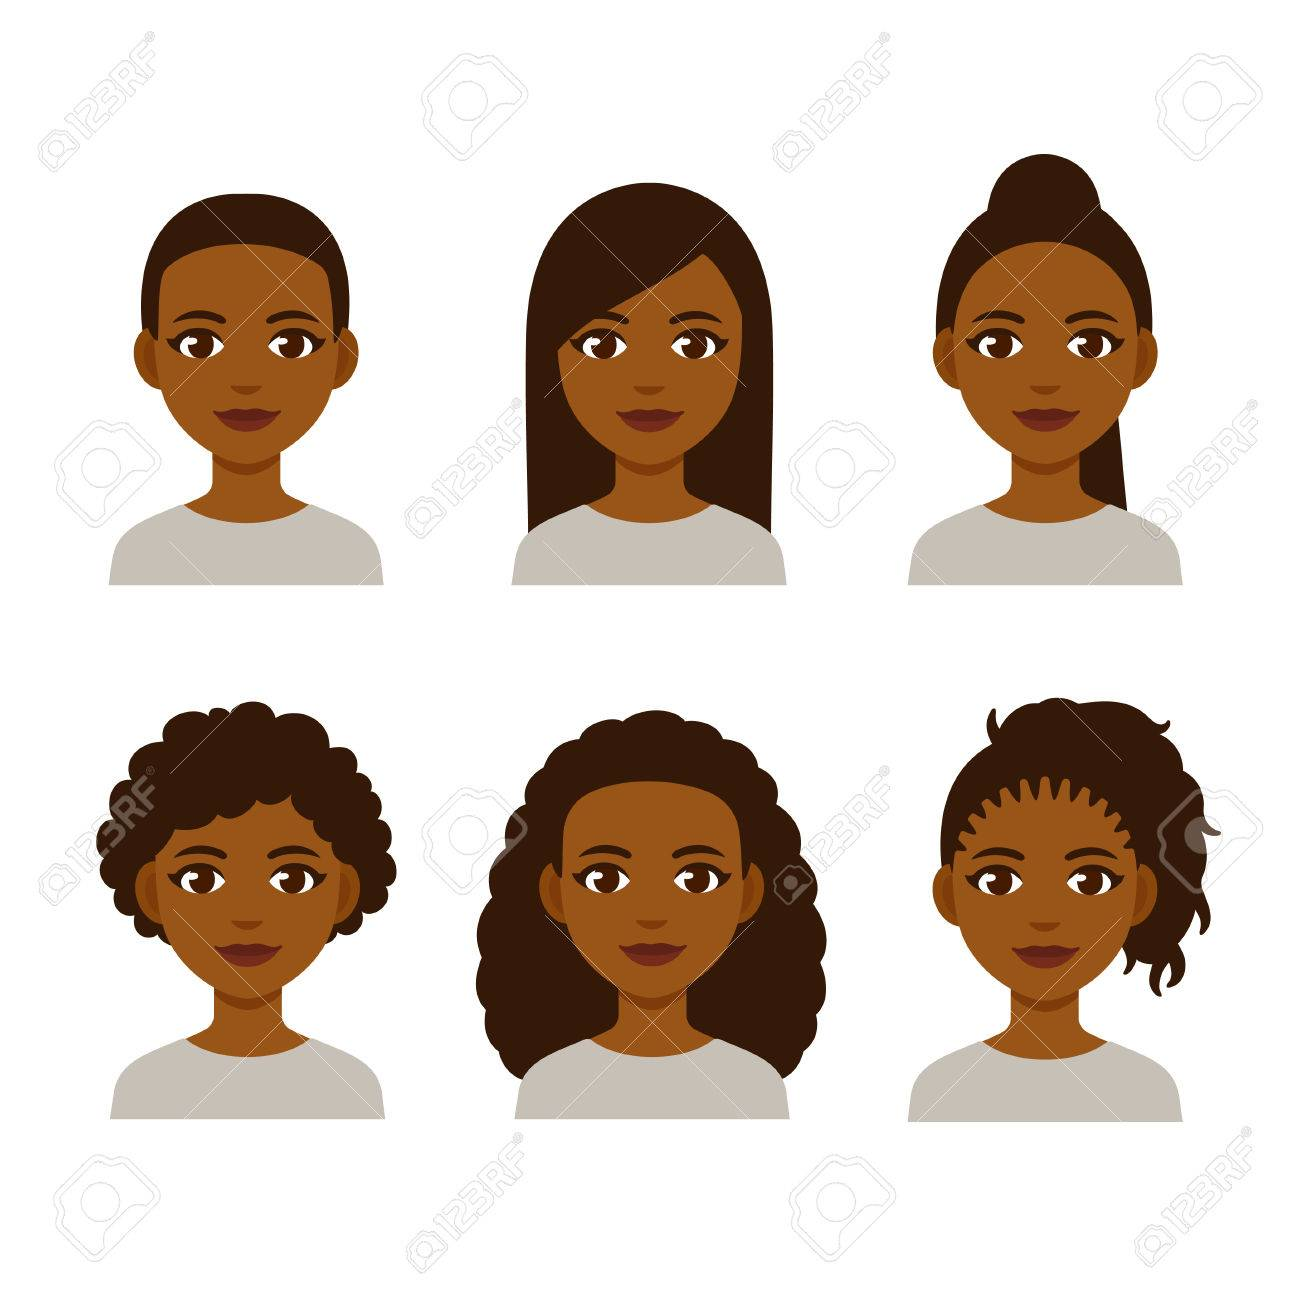 Black Women Faces With Different Hair Styles Cartoon African